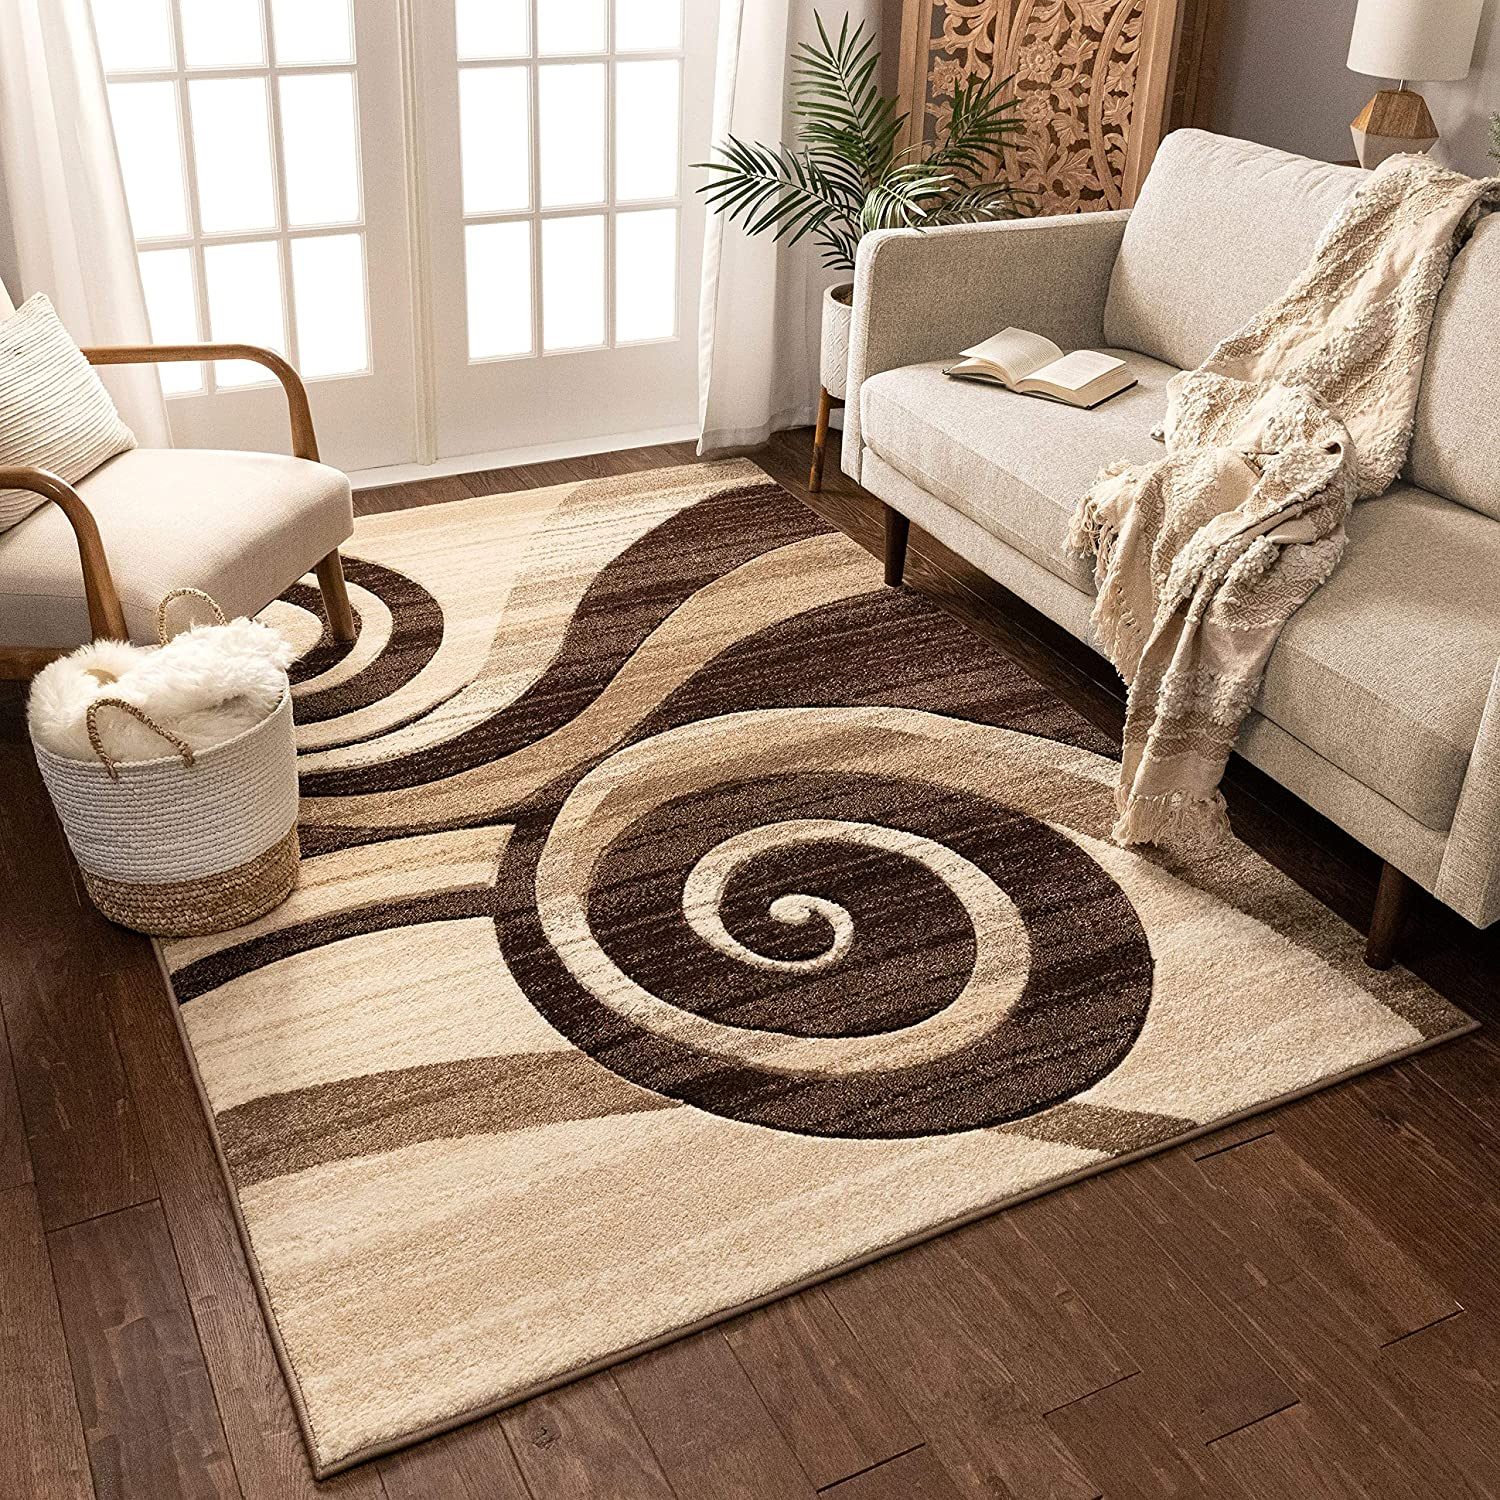 Desert Swirl Brown Beige Modern Geometric Comfy Casual Spiral Hand Carved Area Rug 5x7 5 3 X 7 3 Easy To Clean Stain Fade Resistant Contemporary Thick Soft Plush